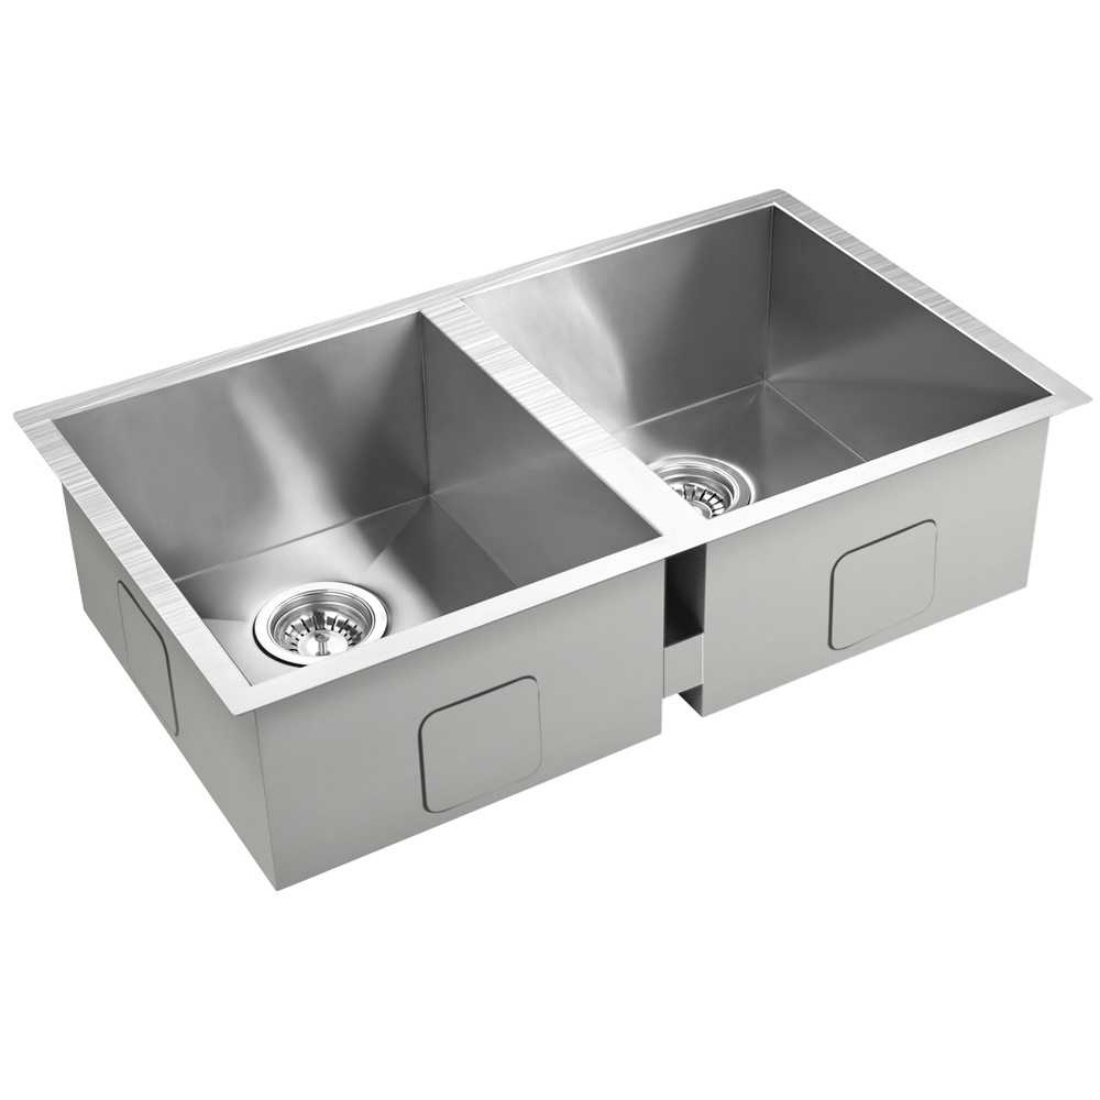 Stainless Steel Kitchen/Laundry Sink w/ Strainer Waste 770 x 450 mm